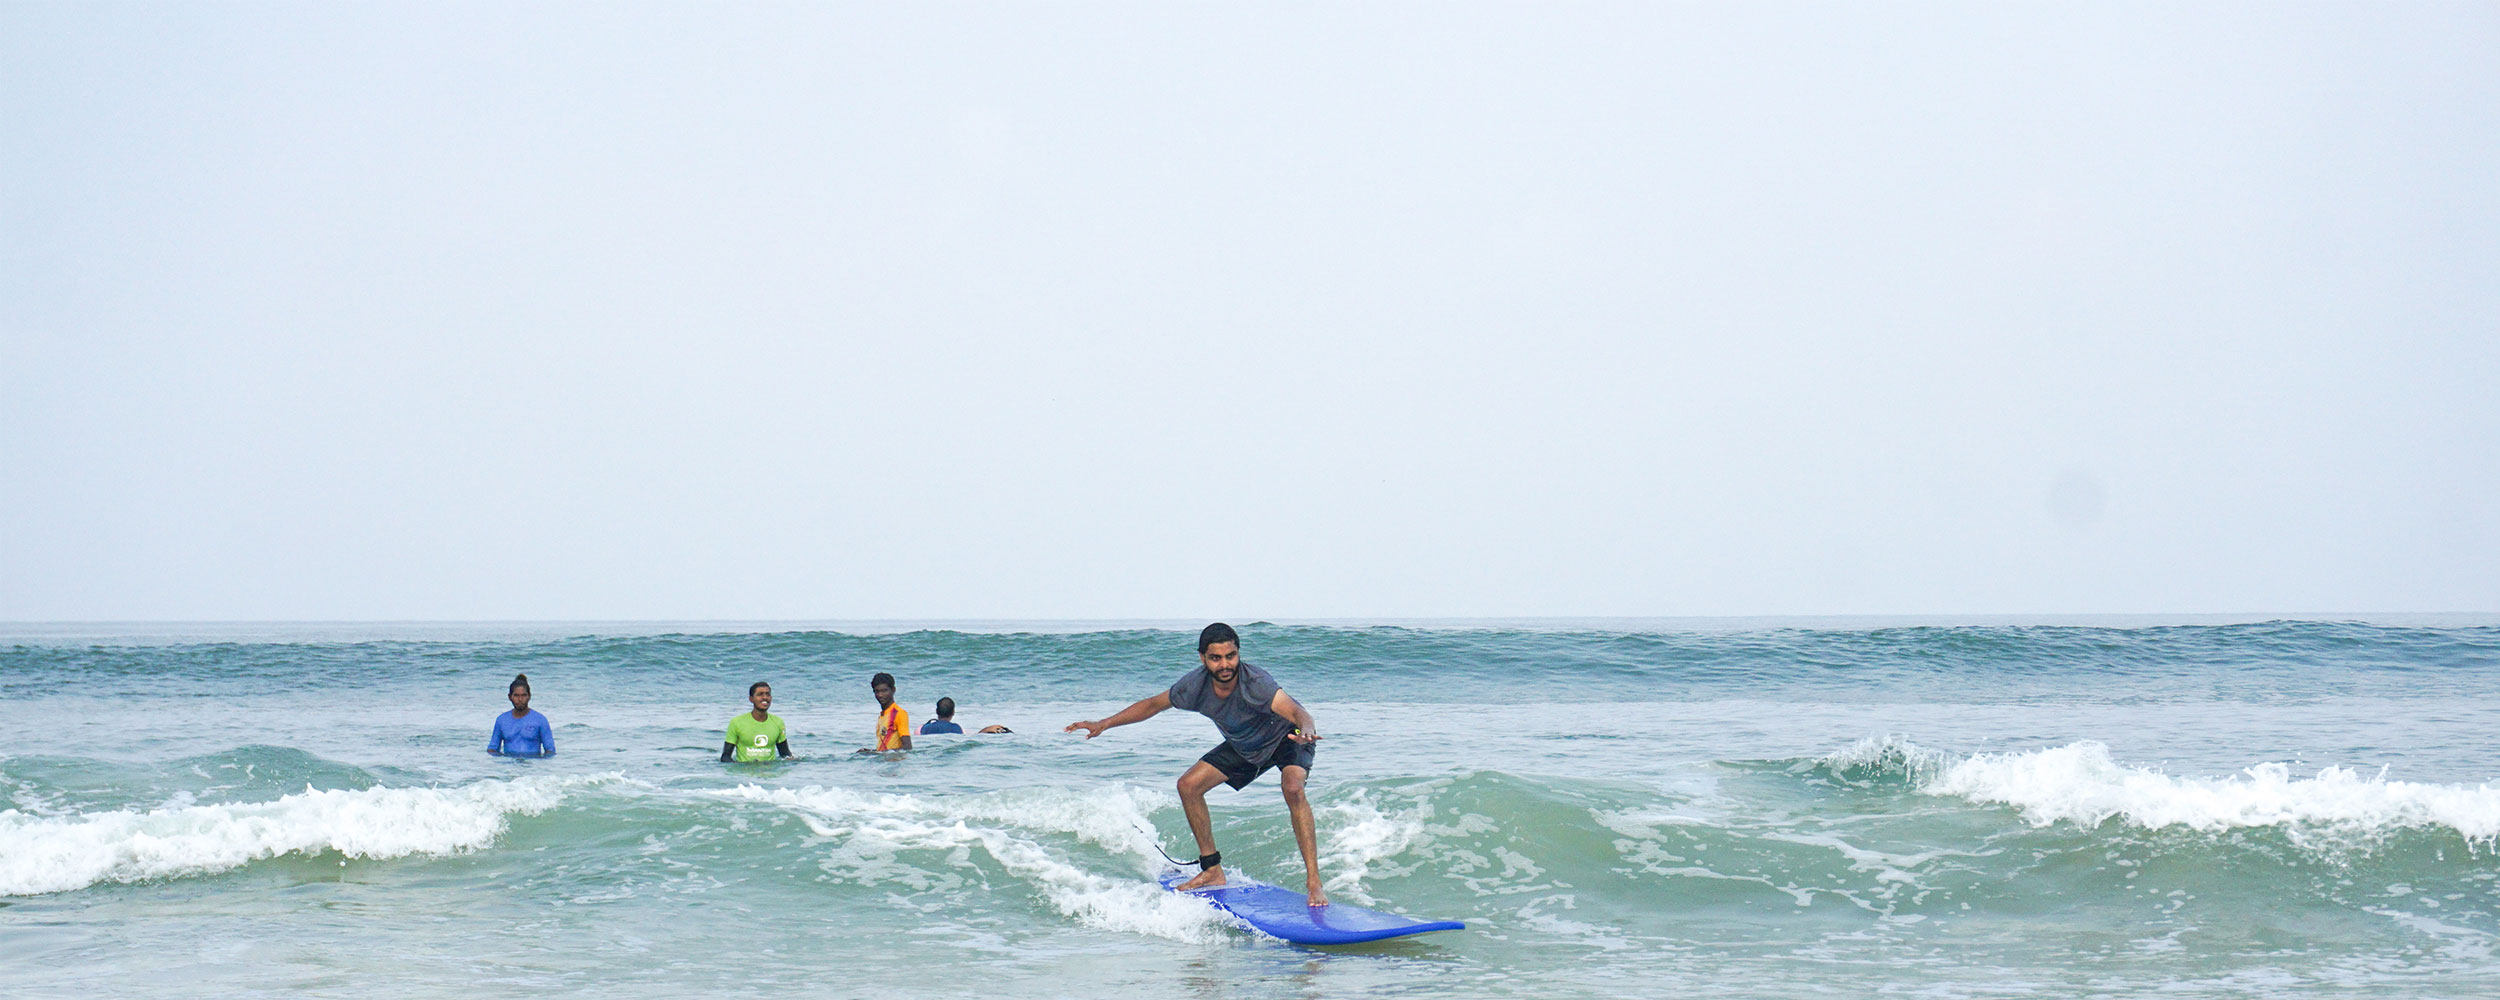 Surfing for Beginners in Andaman and Nicobar Islands